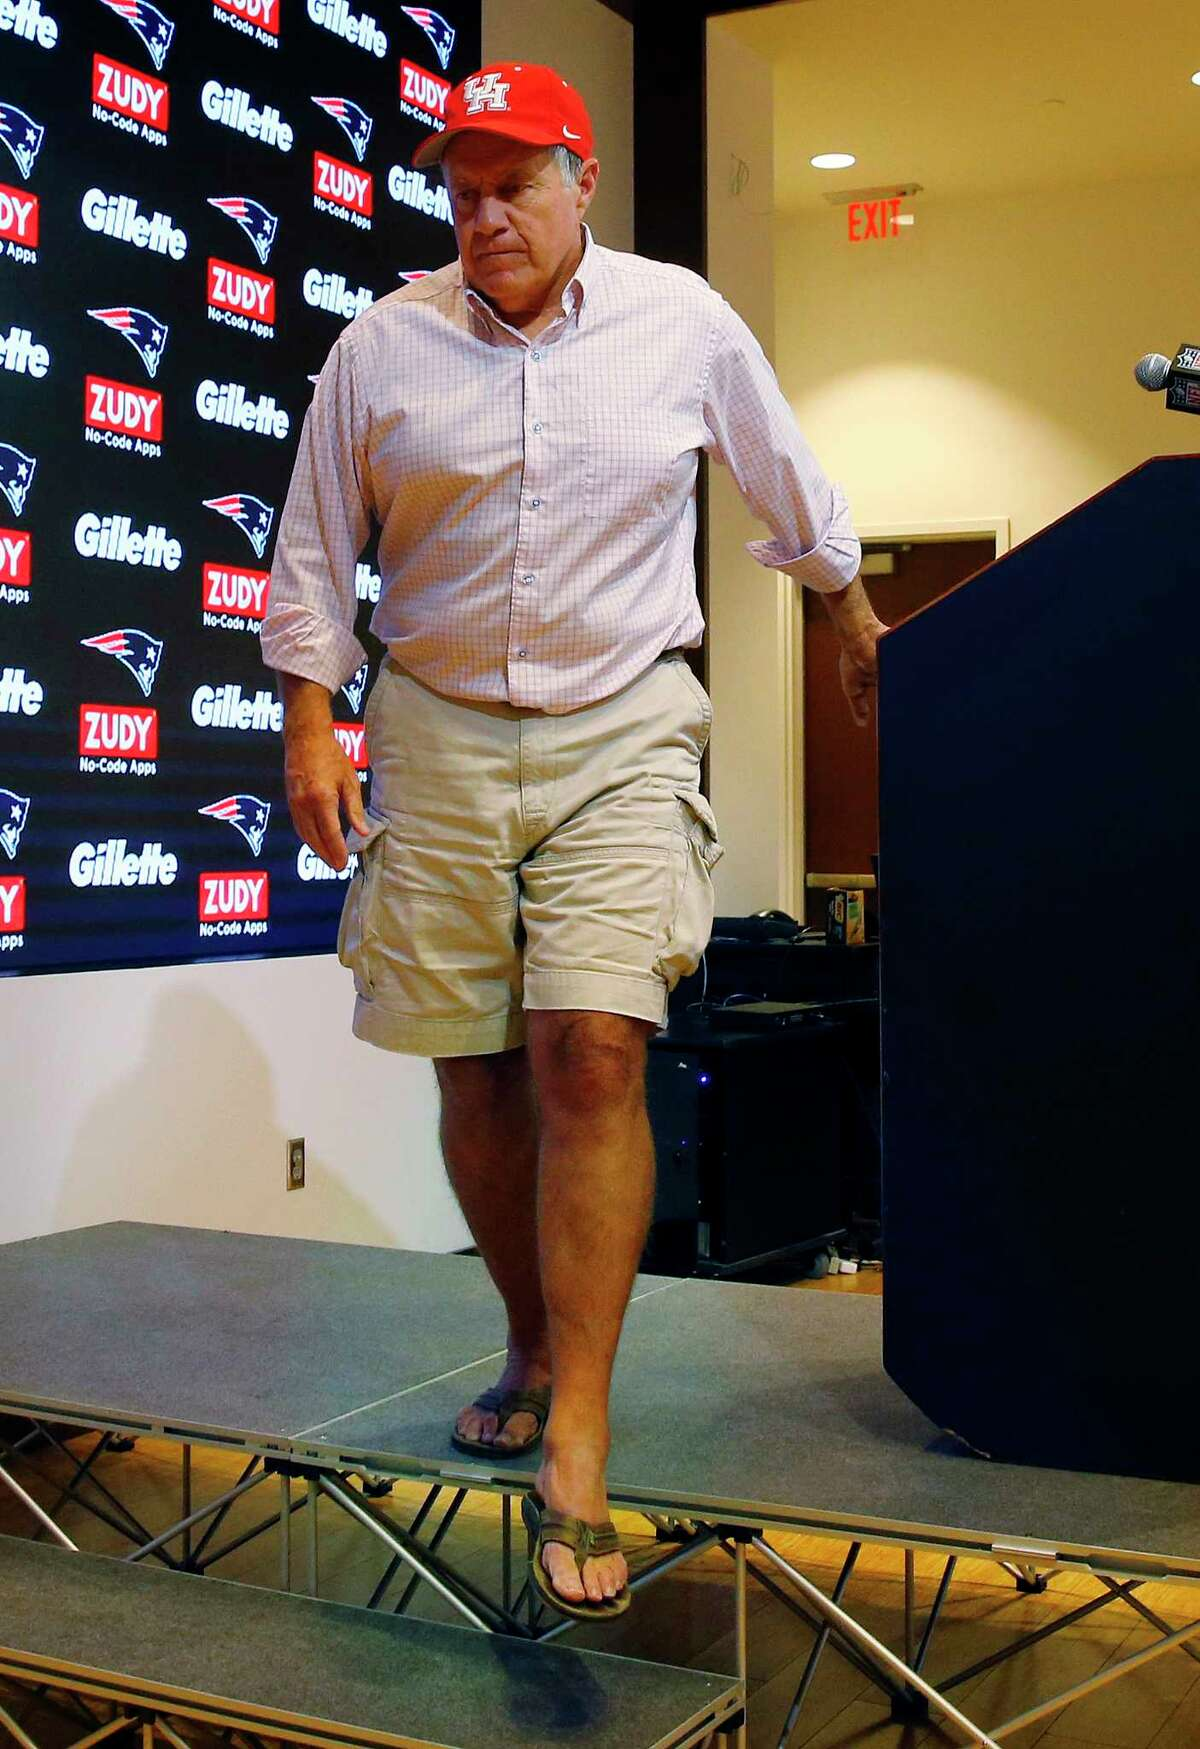 New England Patriots head coach Bill Belichick, wearing a University of Houston cap to show support for those affected by Tropical Storm Harvey in Houston, as he departs after speaking to the media following an NFL preseason football game against the New York Giants, Thursday, Aug. 31, 2017, in Foxborough, Mass. (AP Photo/Winslow Townson)